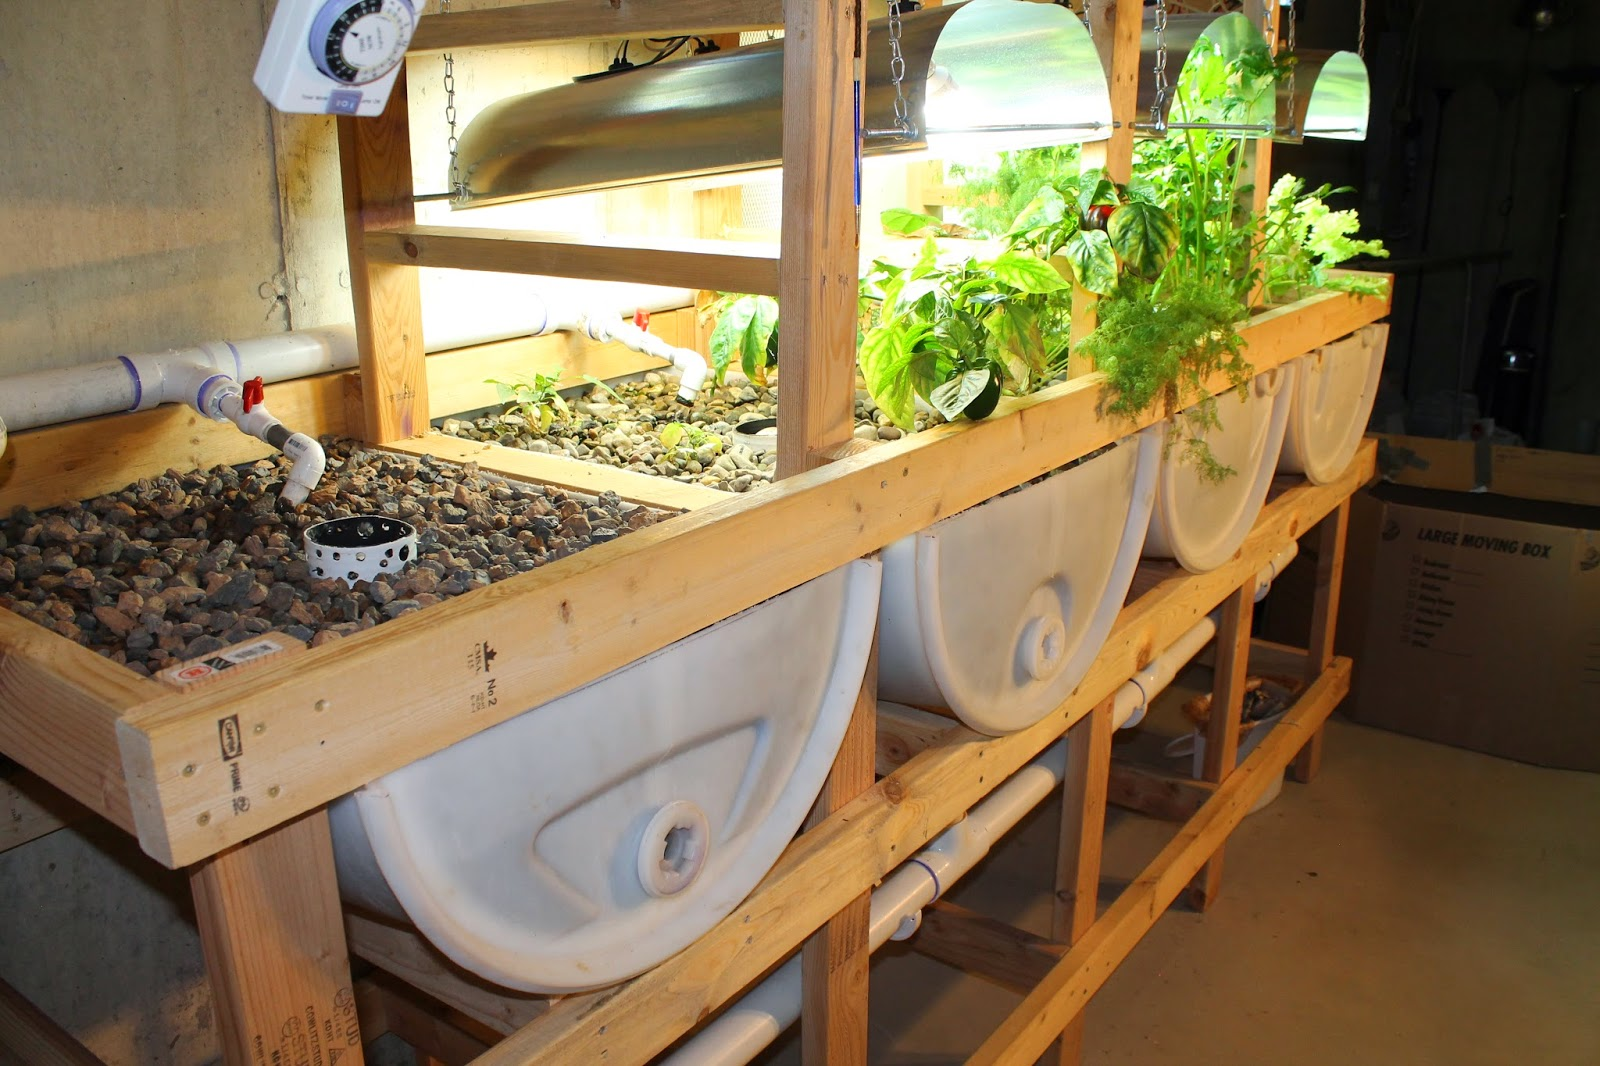 Aquaponics system design selecting grow beds simple for Aquaponics grow bed